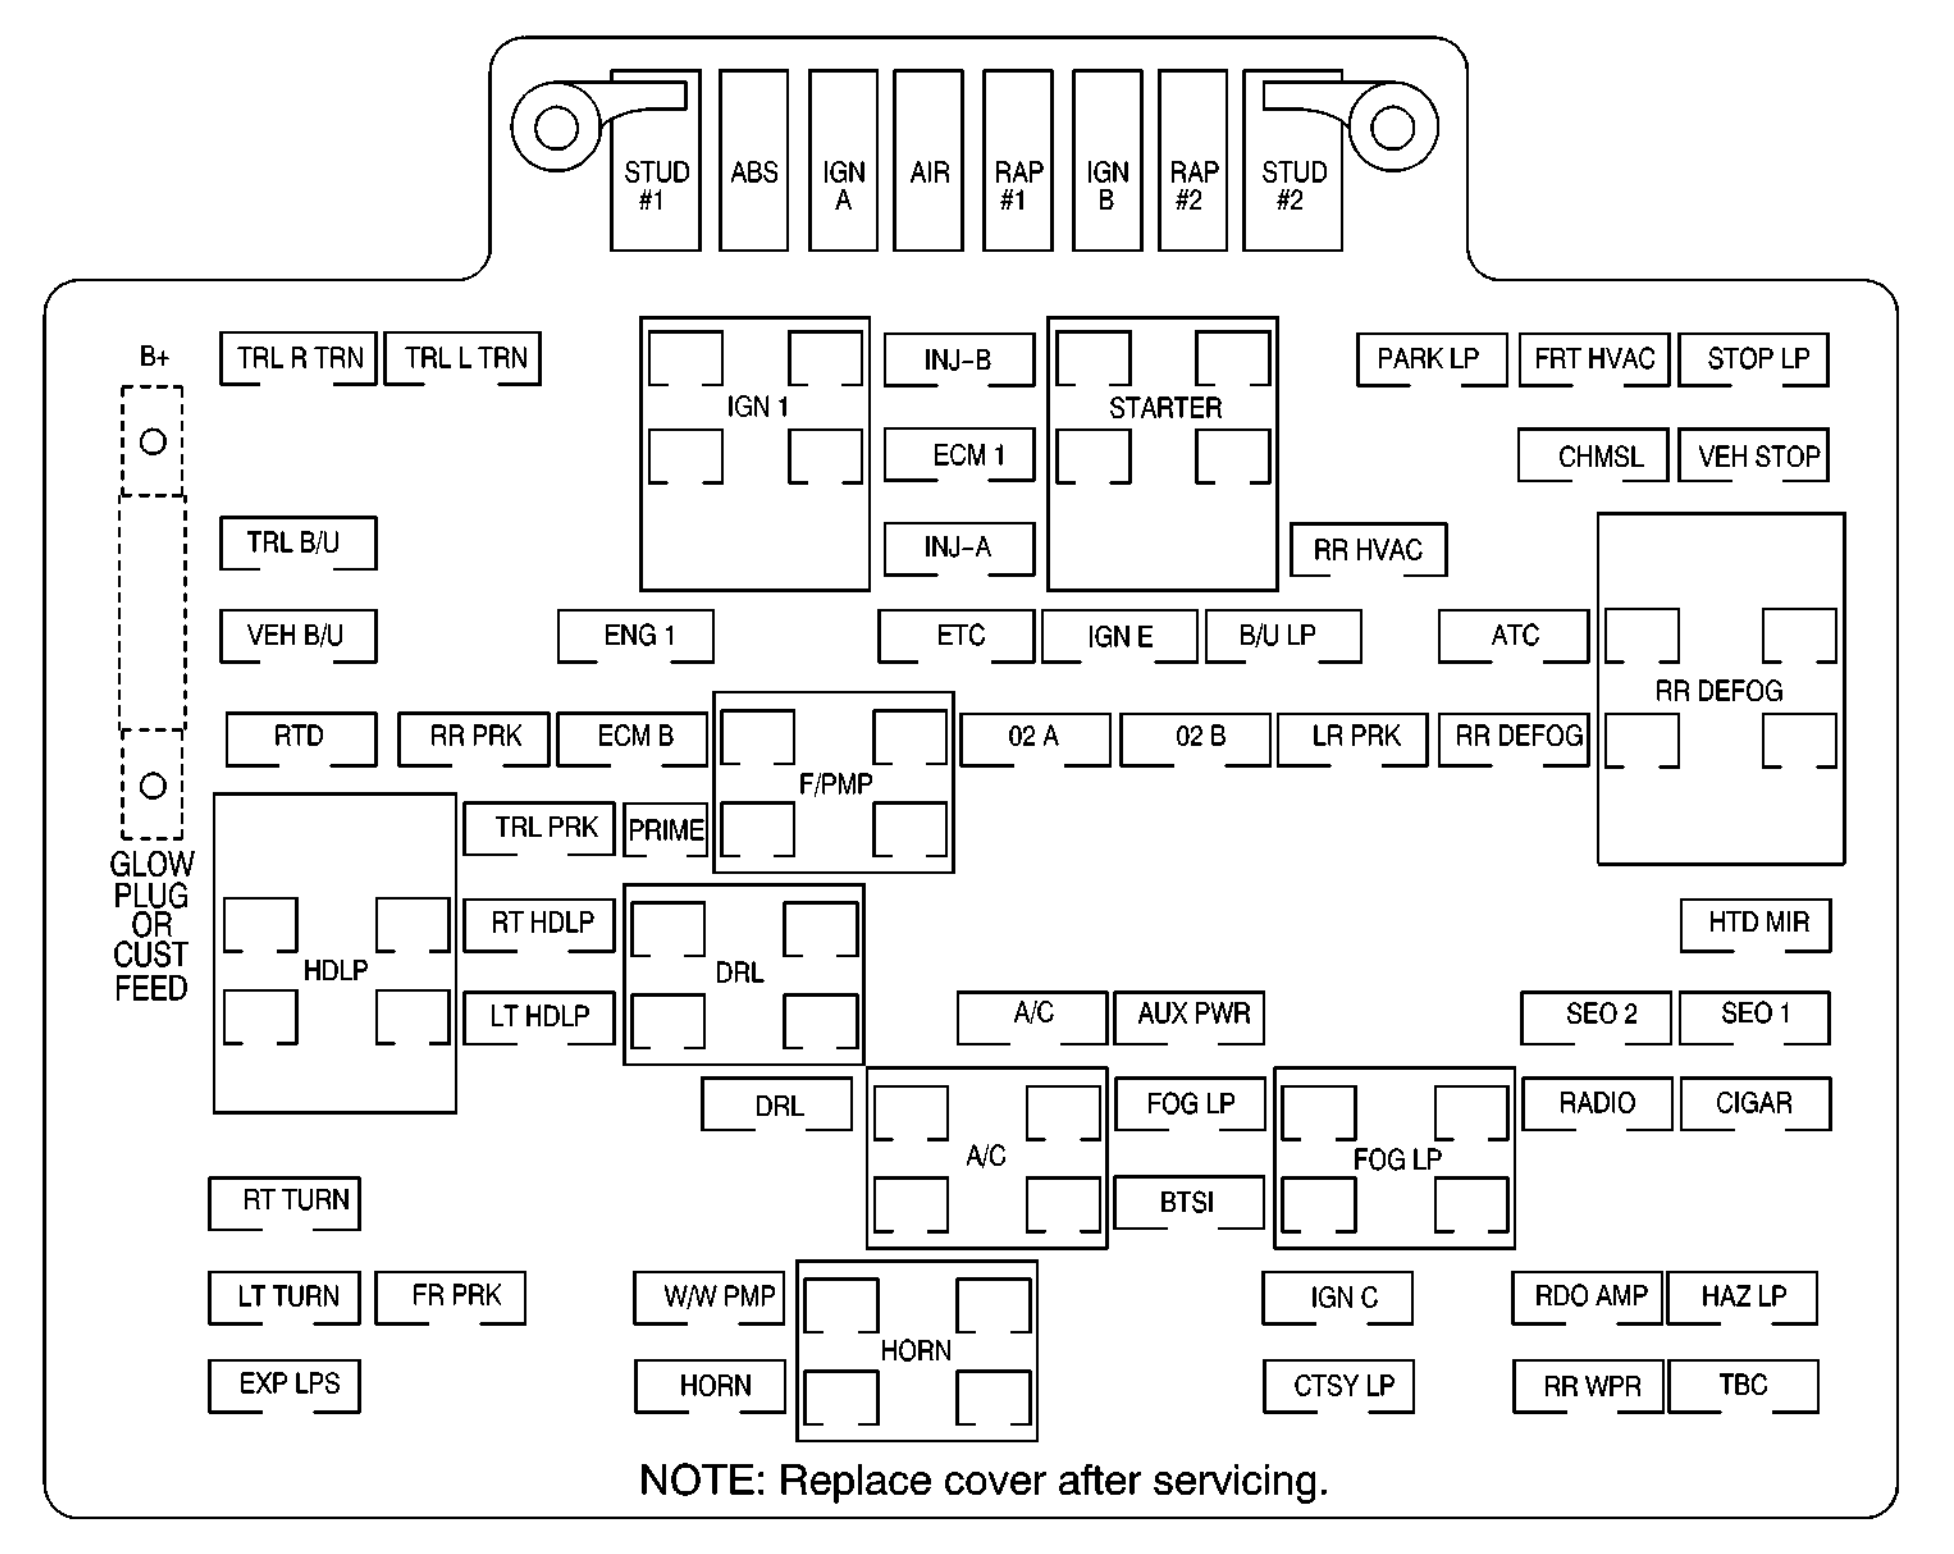 99 Tahoe Wiring Diagram | Wiring Diagram on